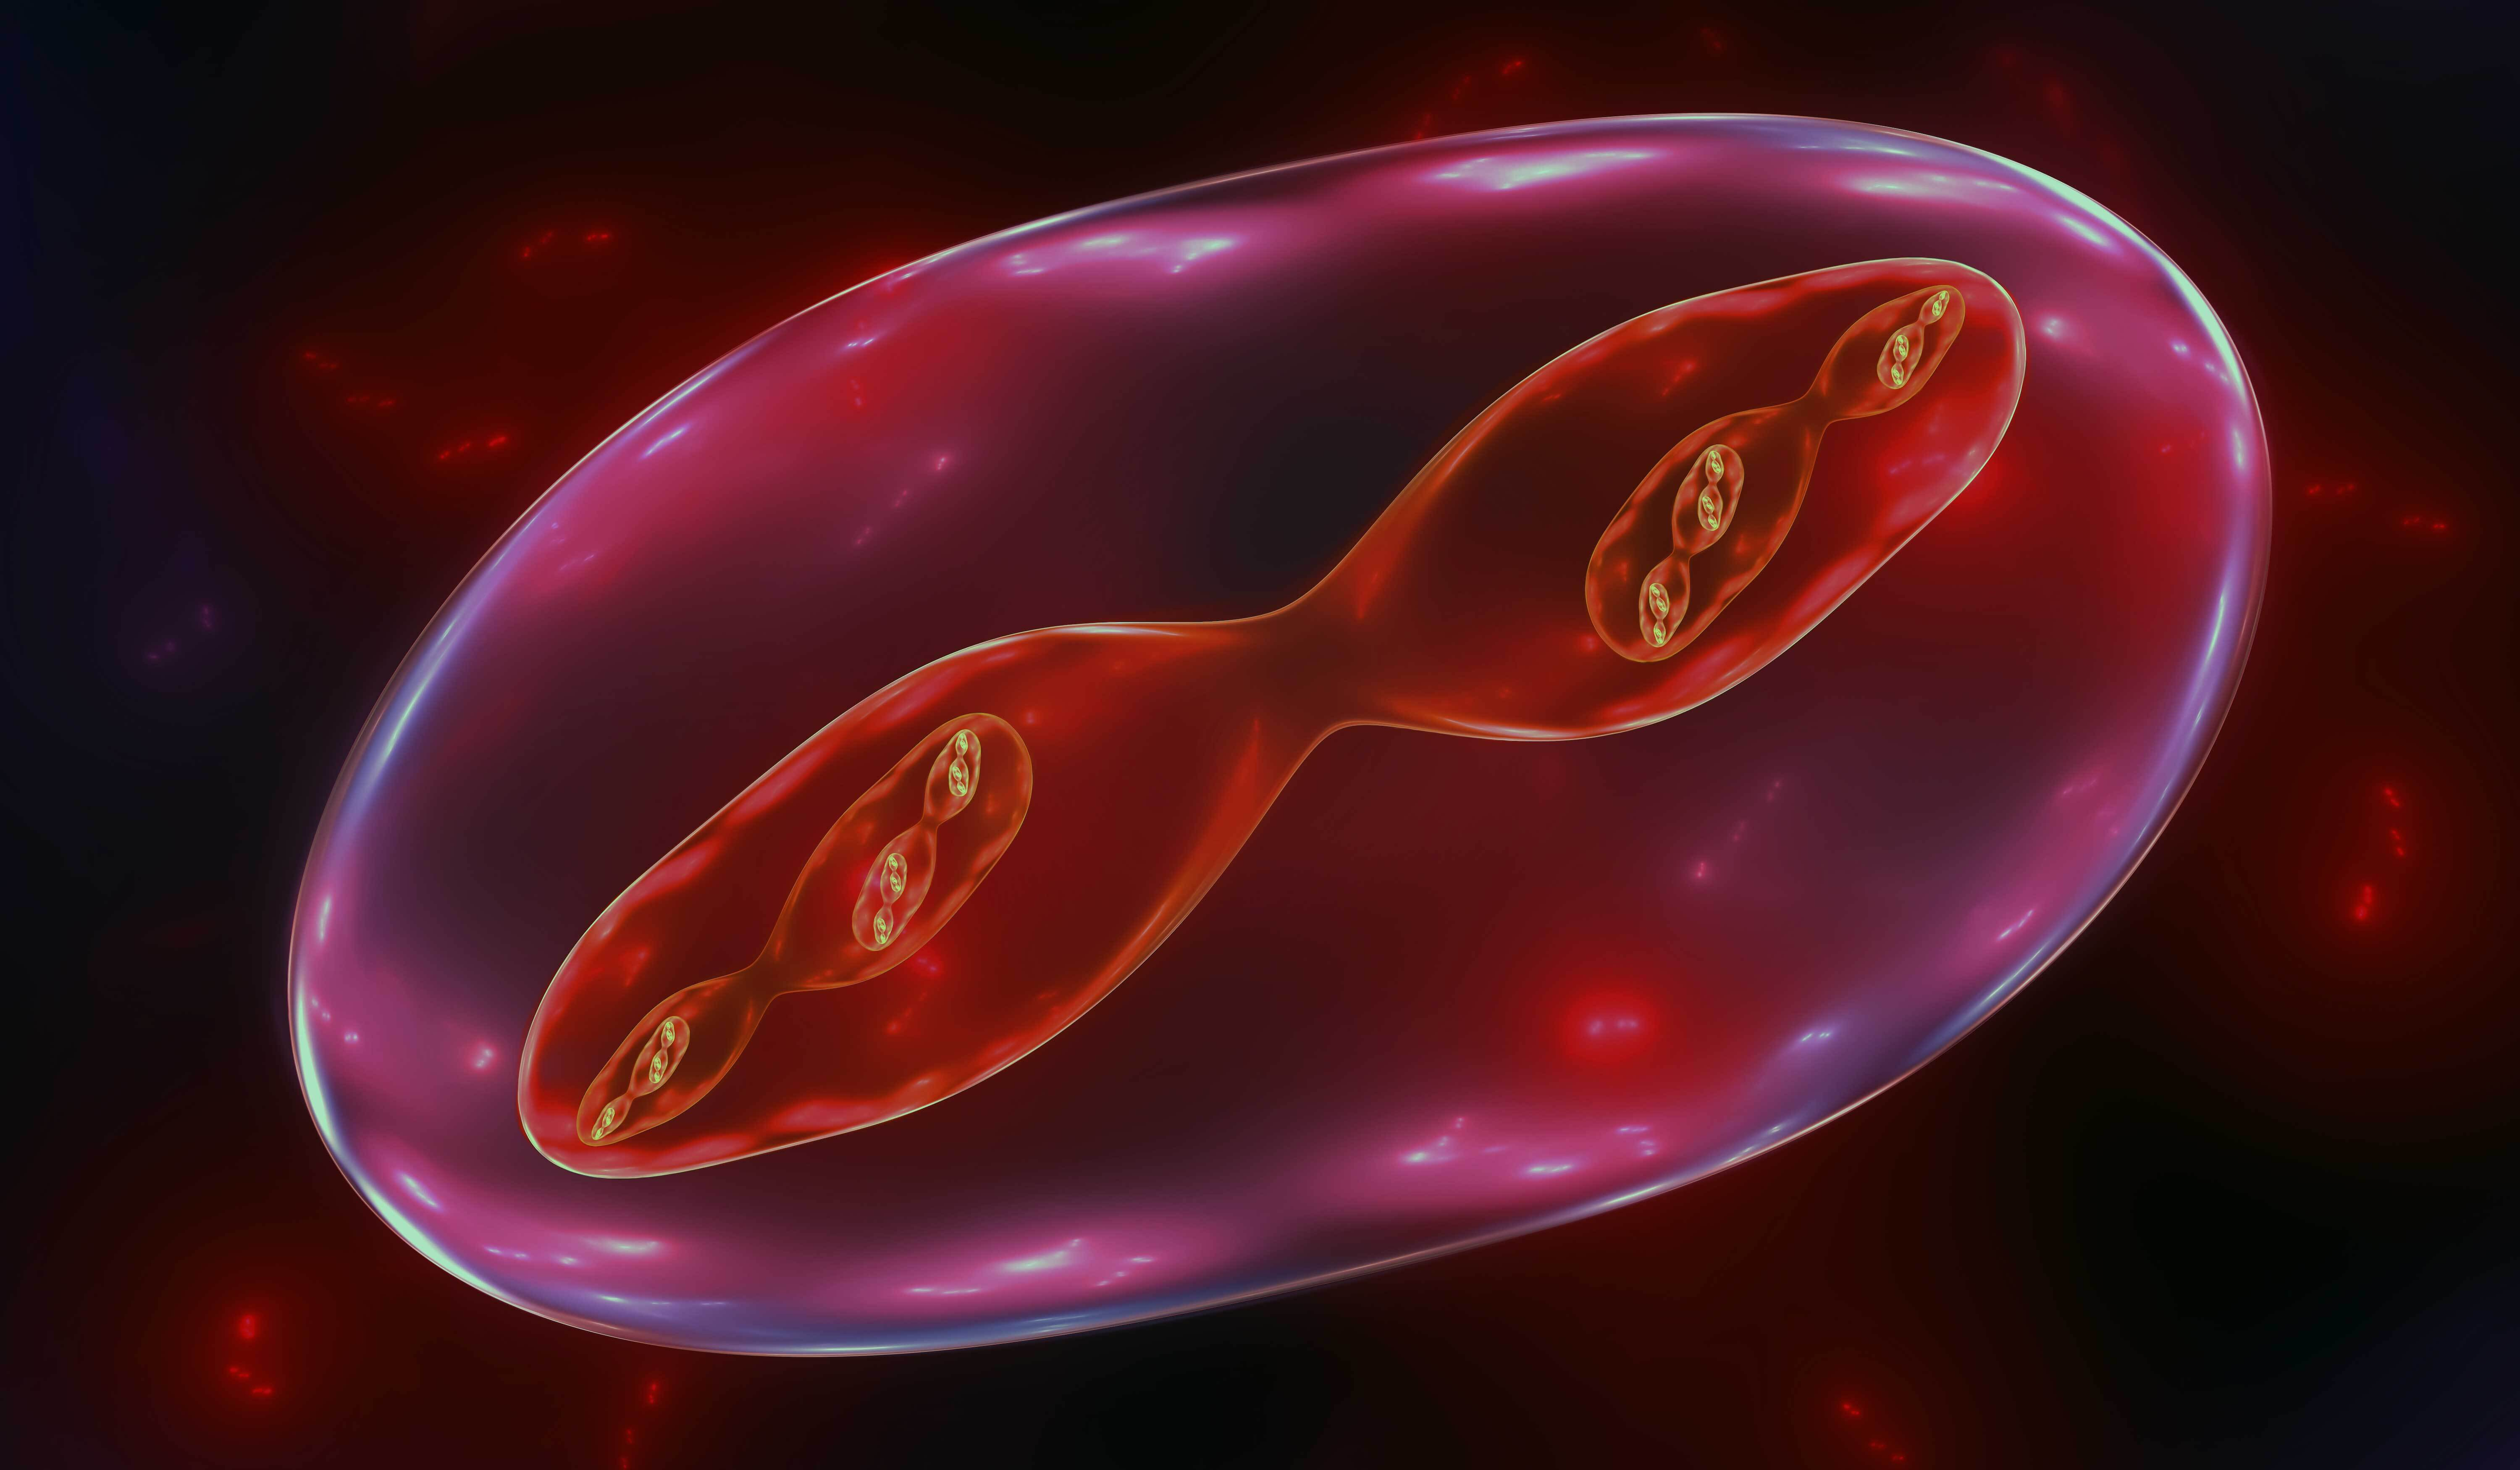 Meiosis: the causes and consequences of sex